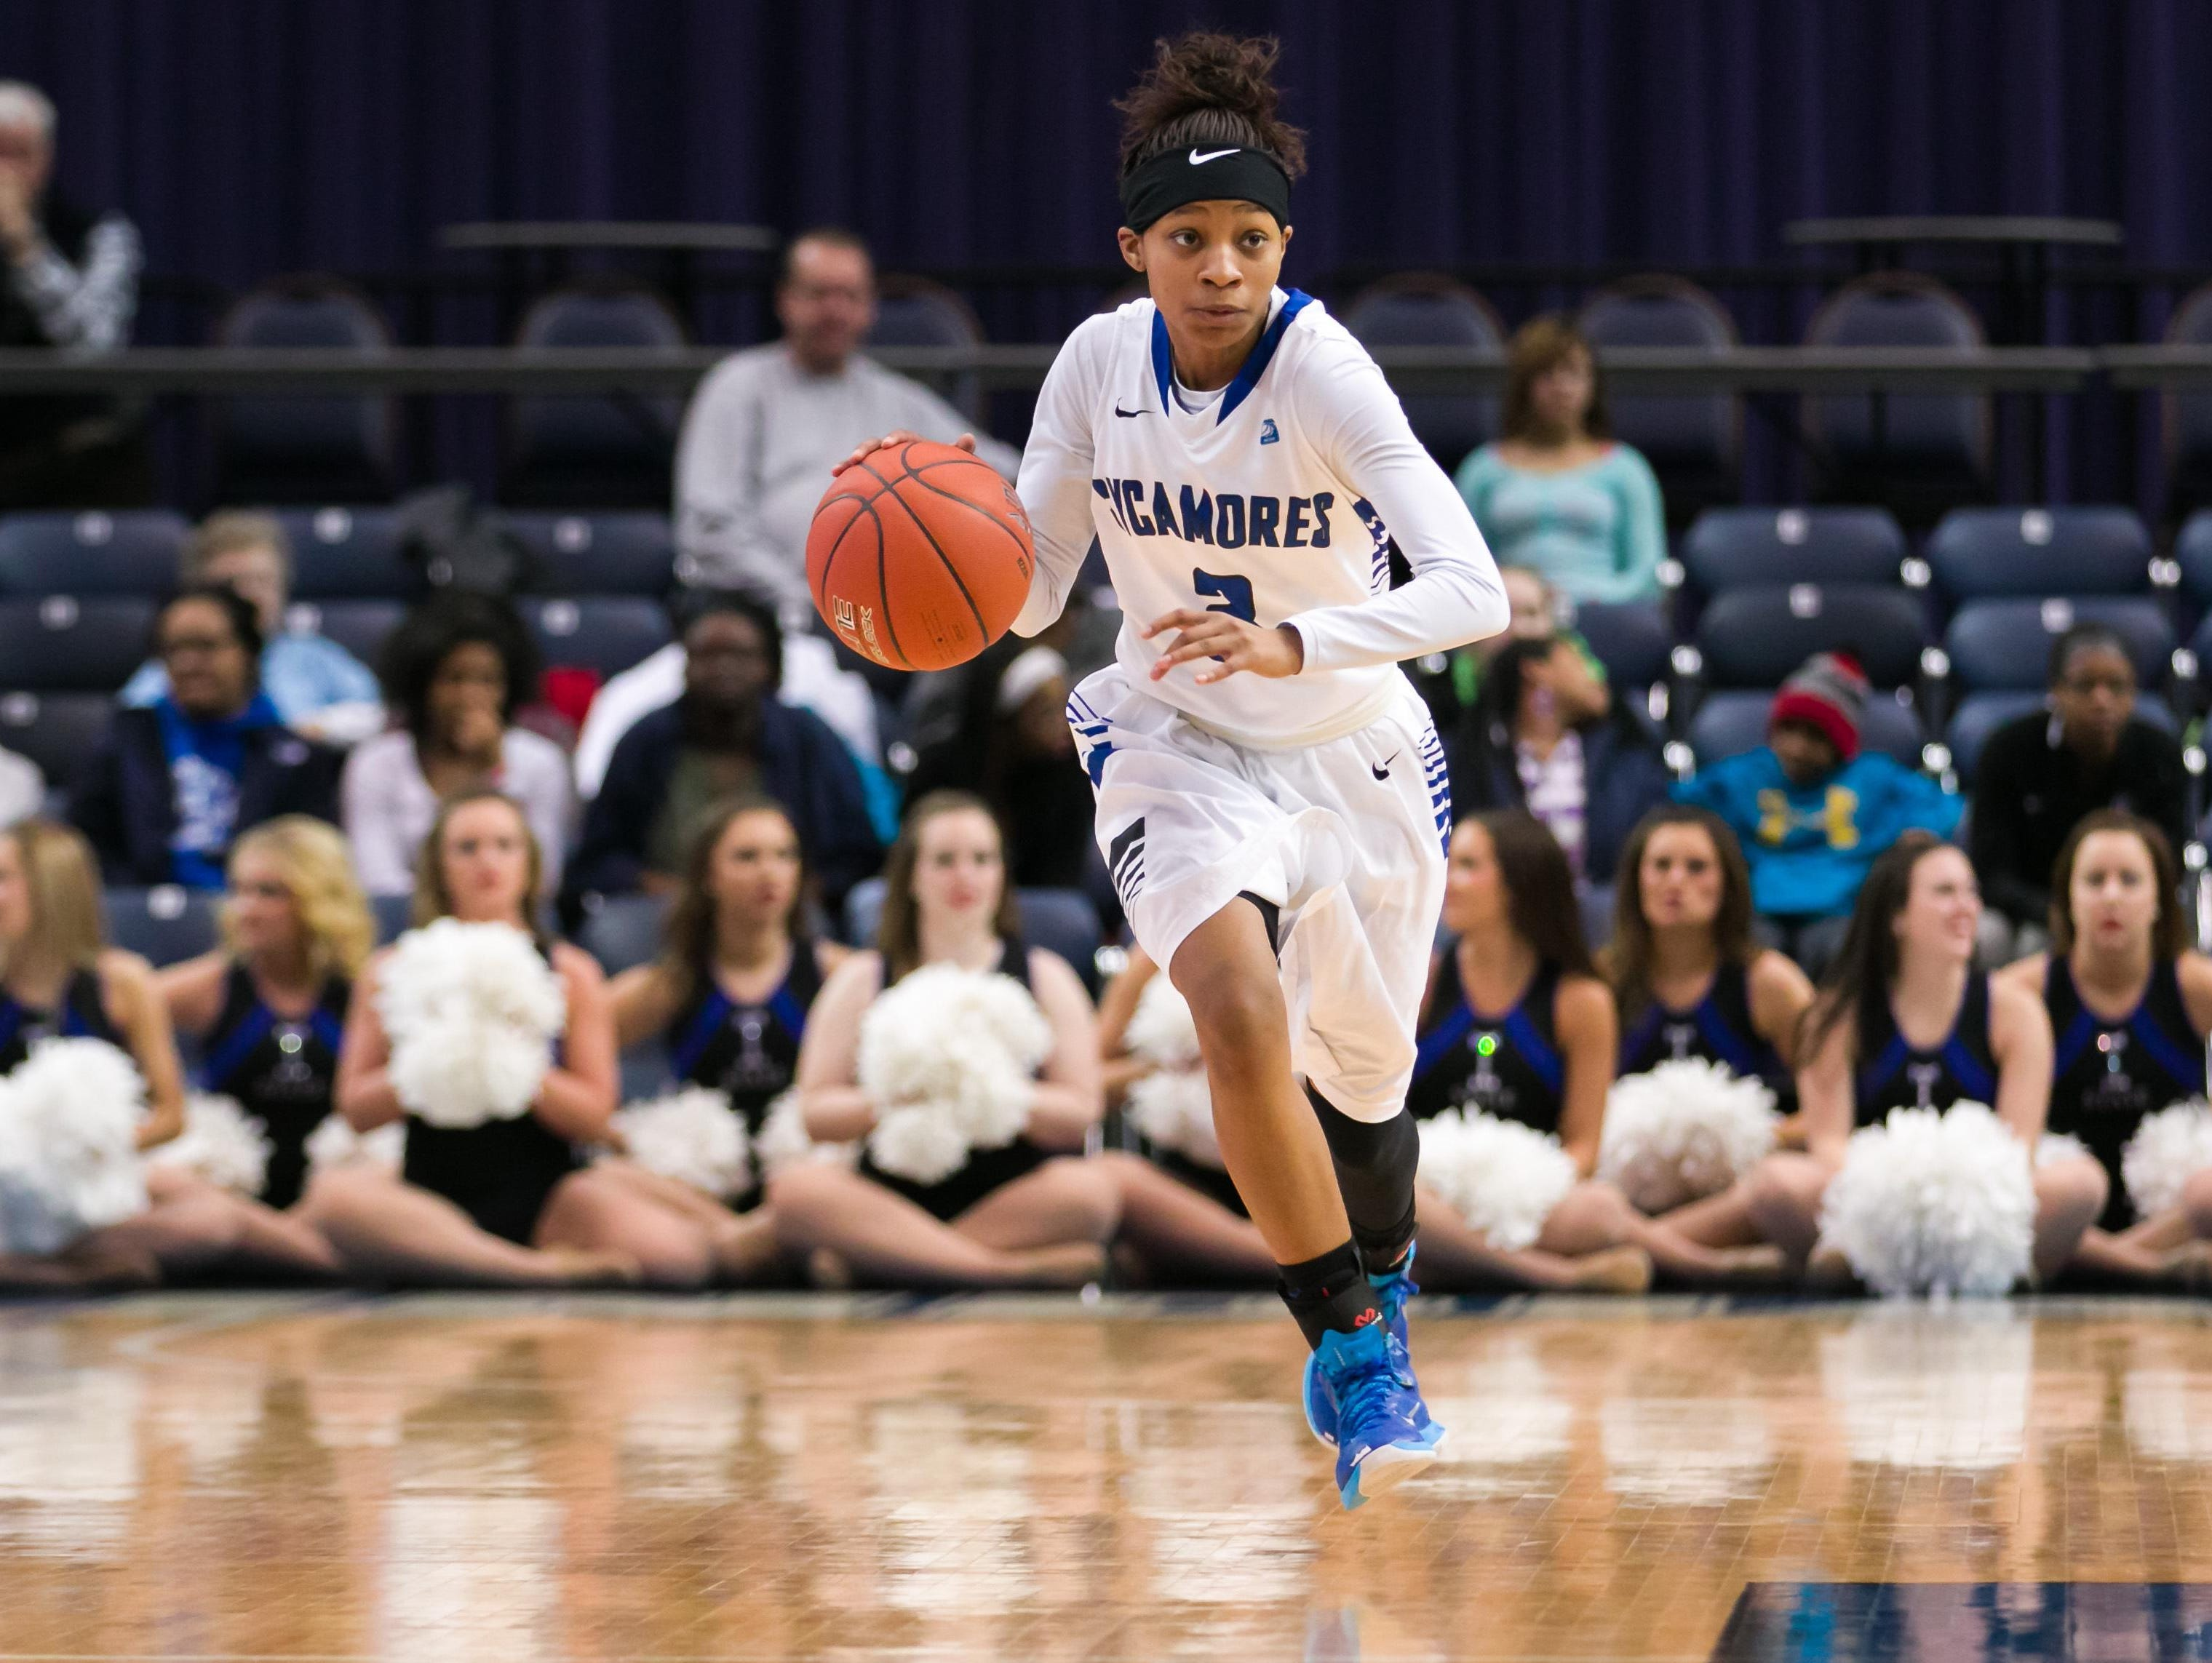 Sycamore grad Alexis Newbolt handles the ball for the Indiana State Sycamores now.